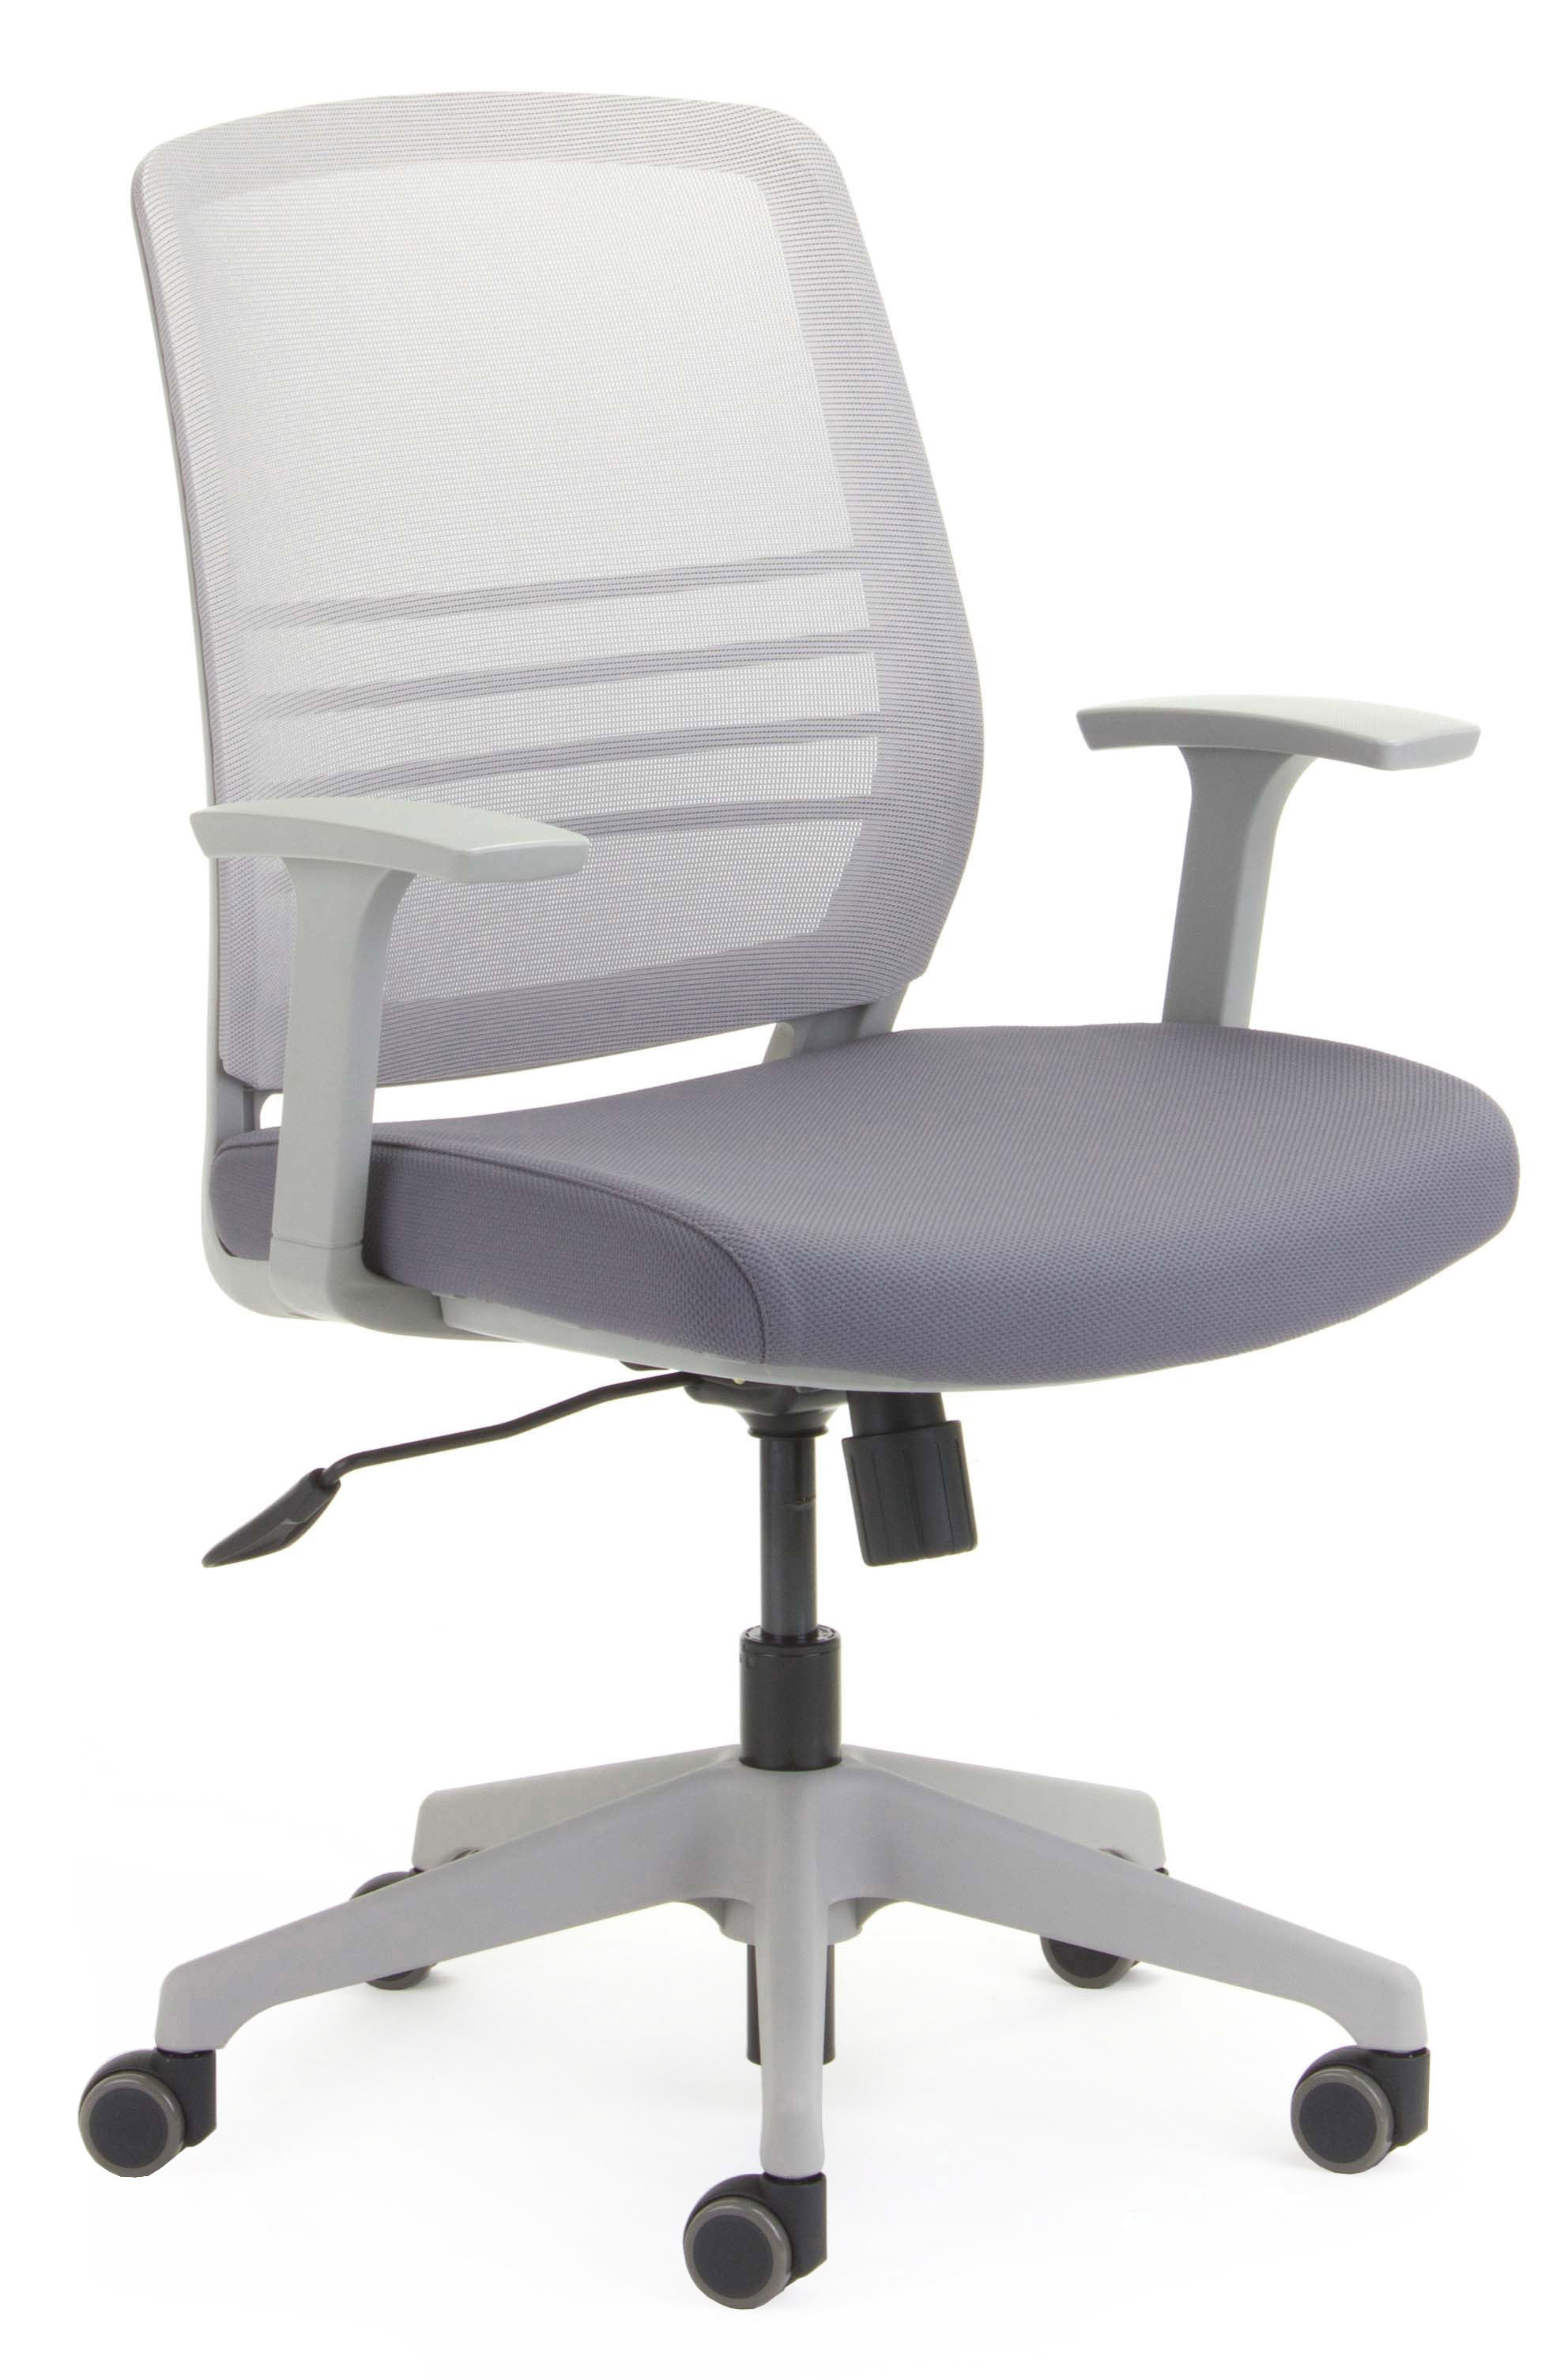 highback hd eam grey fice adjustable of angle back amazon longem mid photos chair desk unique mesh wallpaper